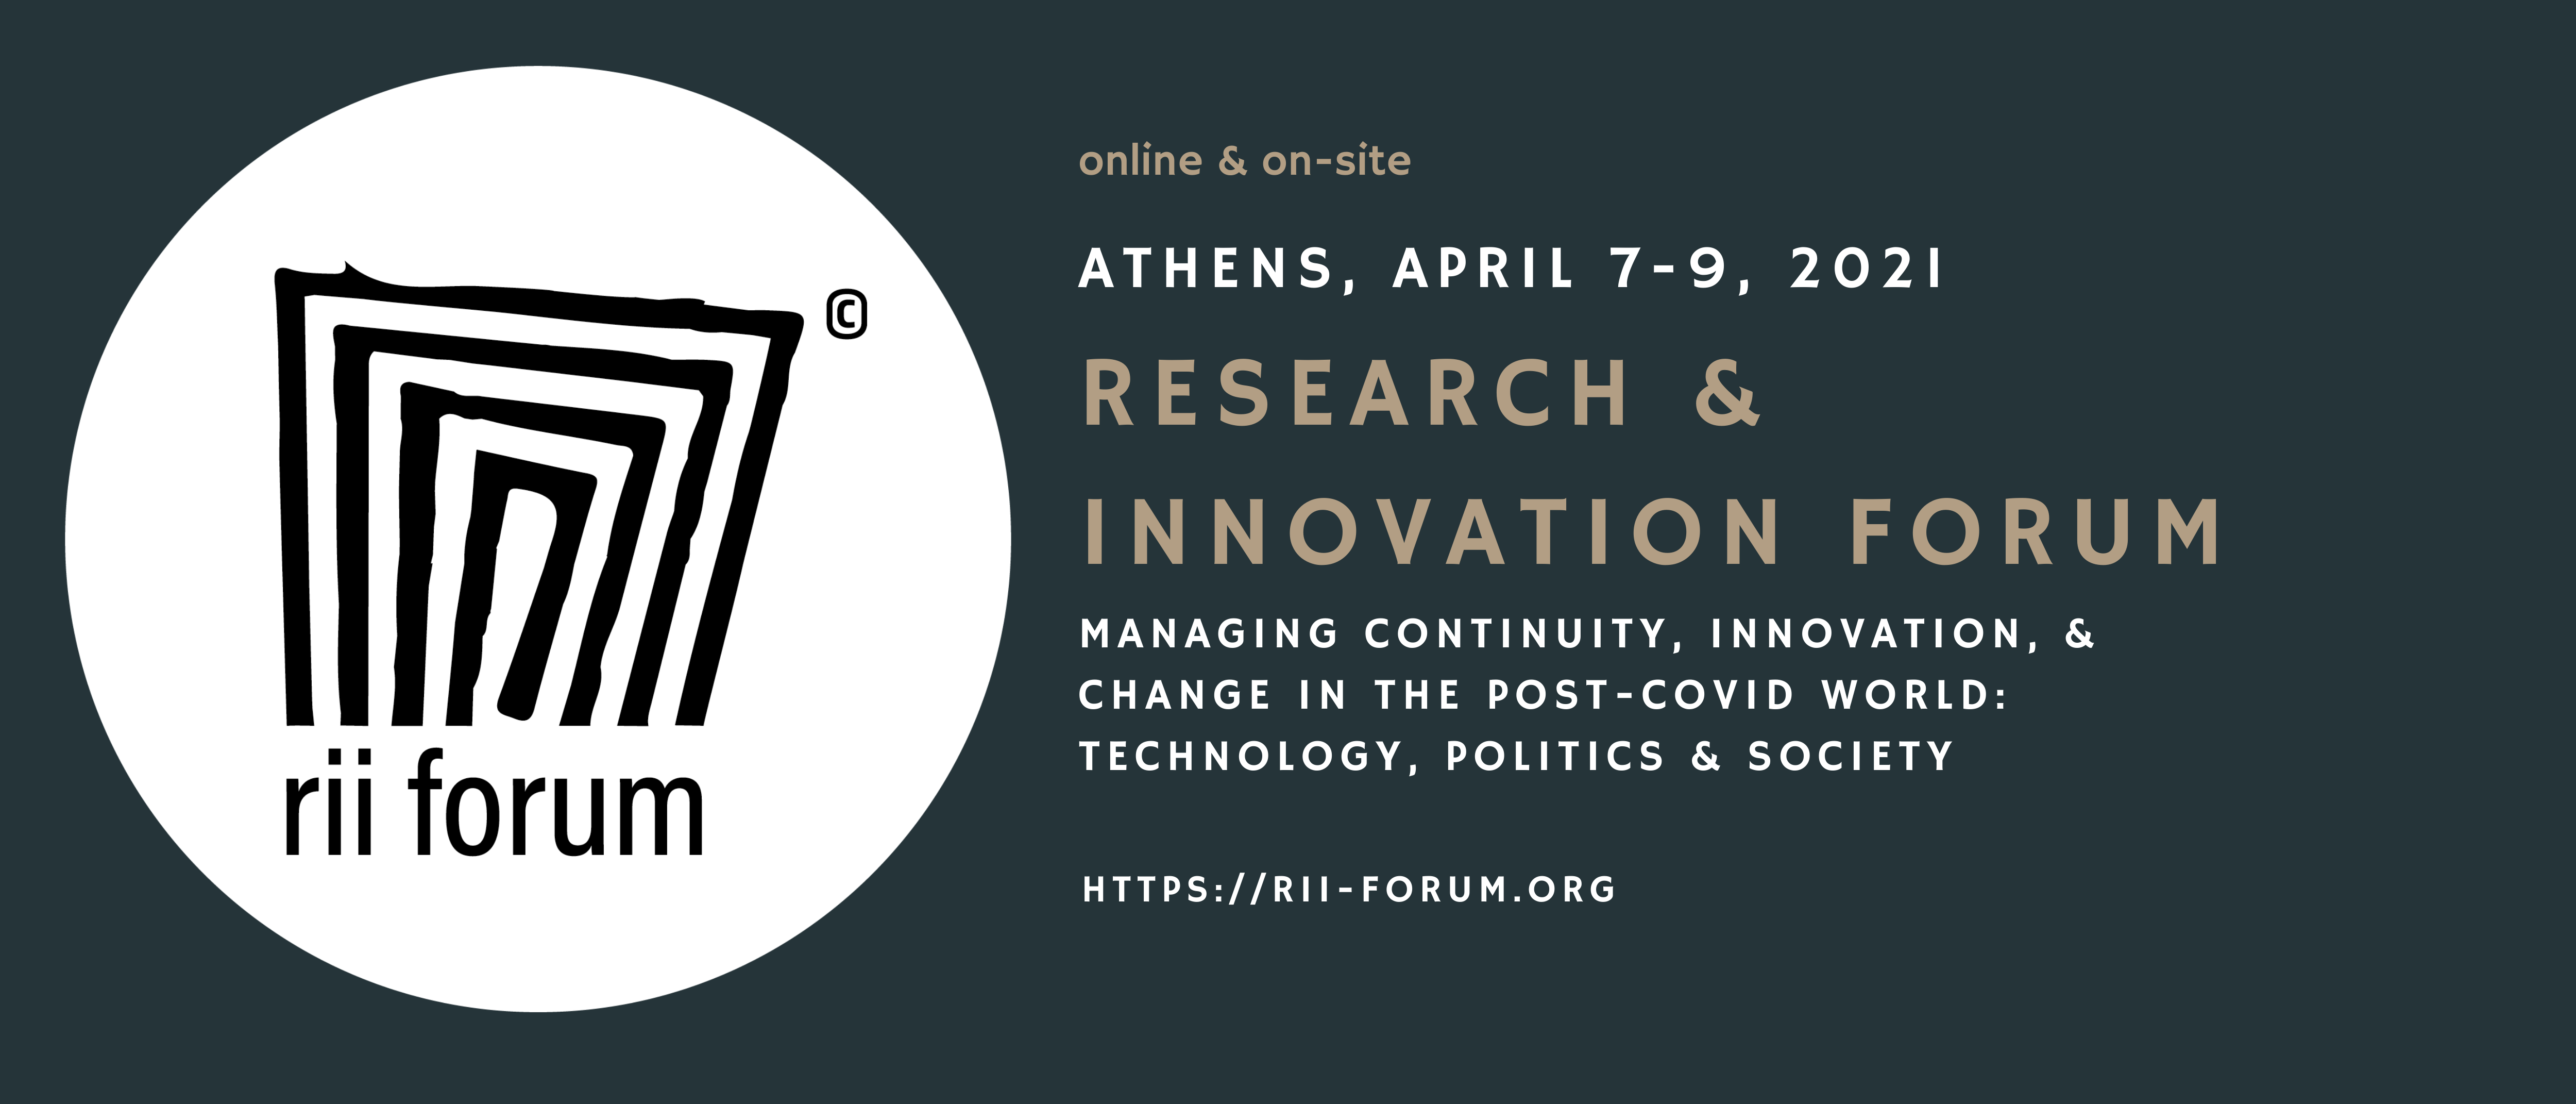 Research & Innovation Forum 2021